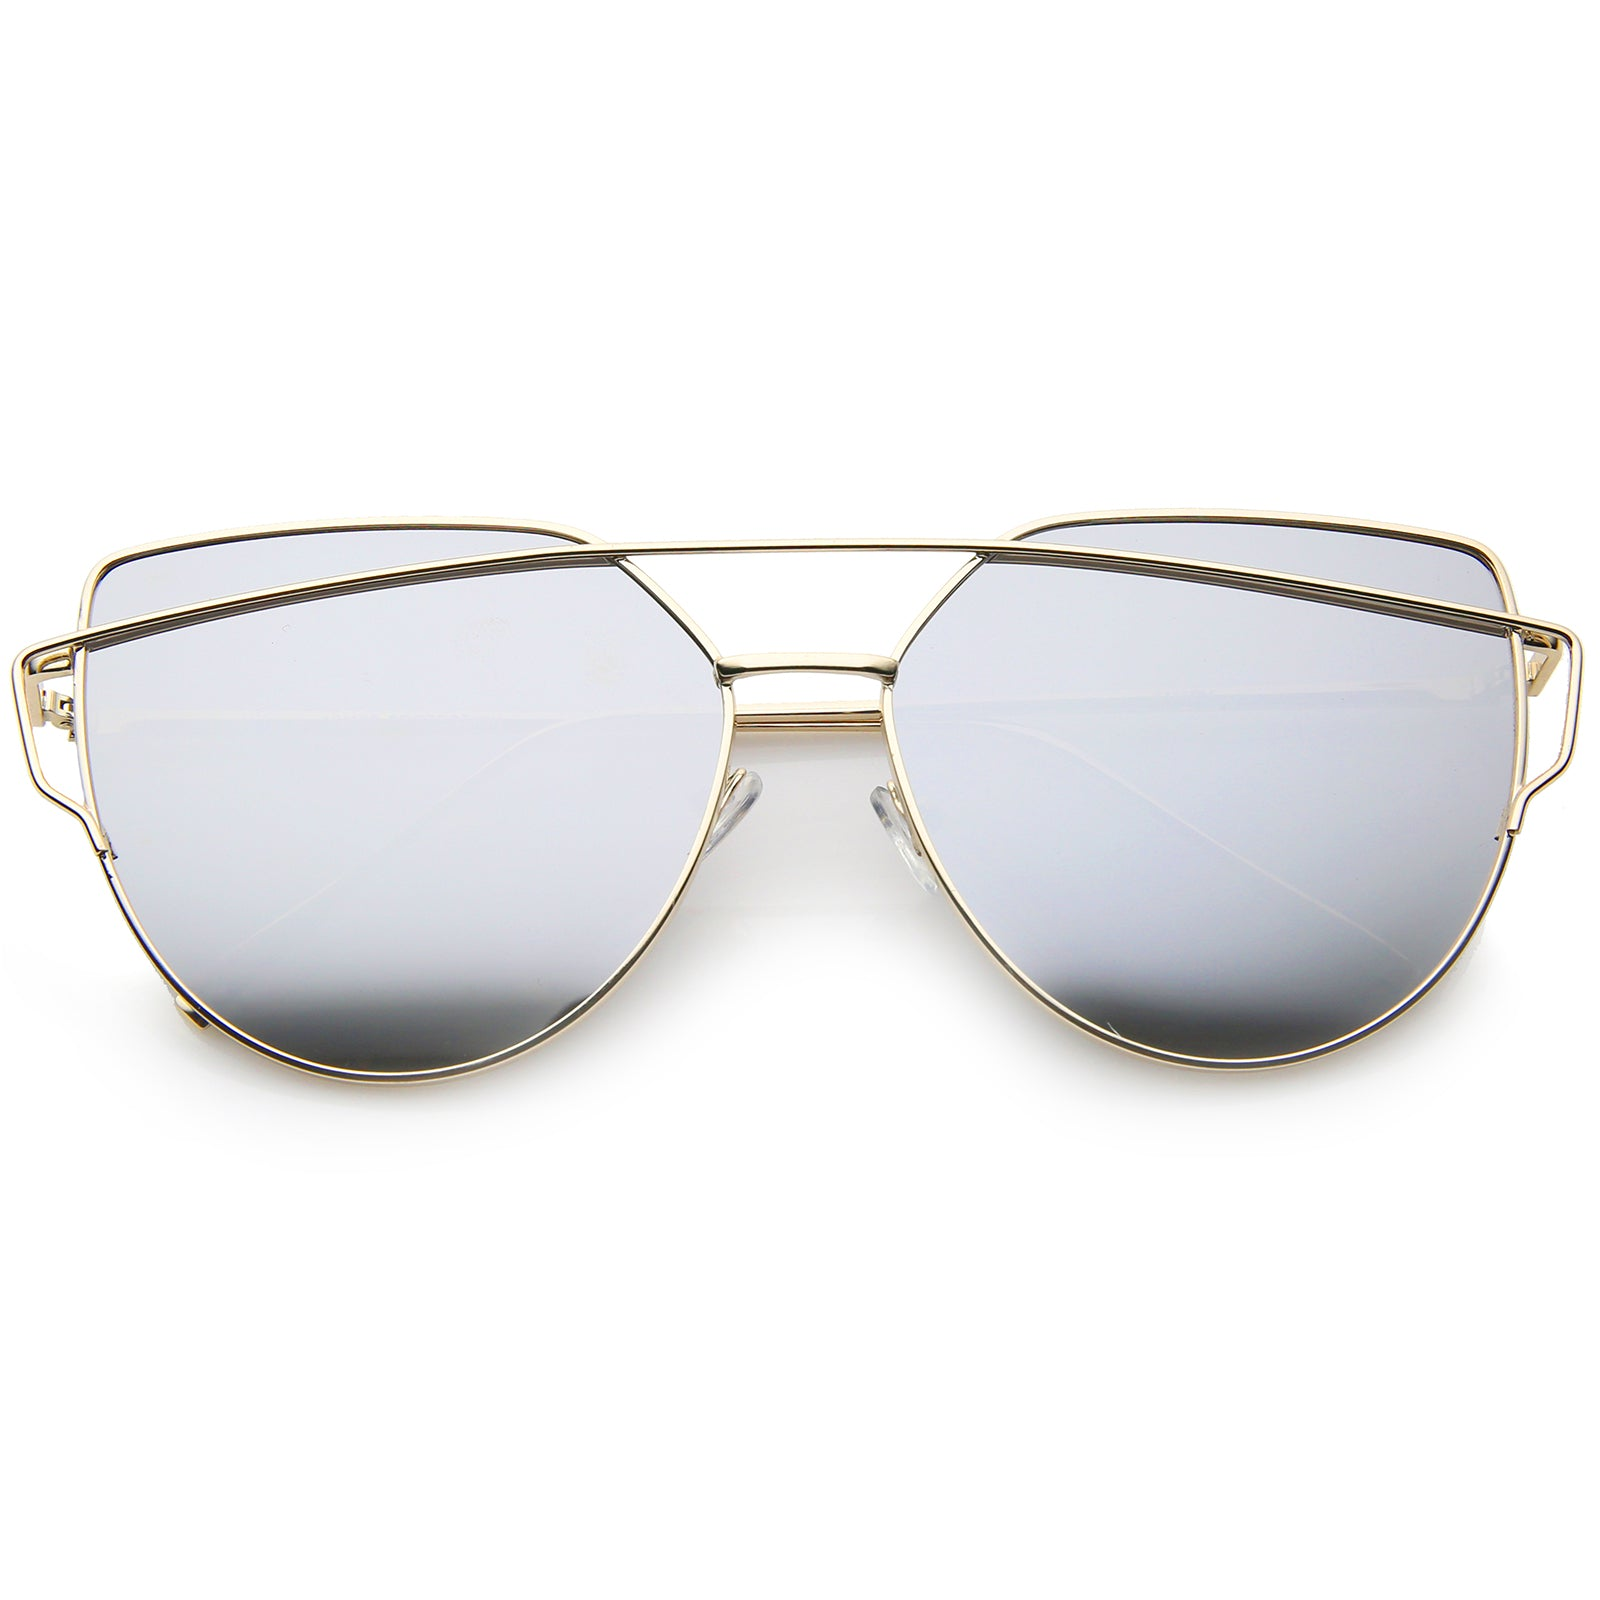 Oversize Metal Frame Thin Temple Color Mirror Flat Lens Aviator Sunglasses 62mm - sunglass.la - 5